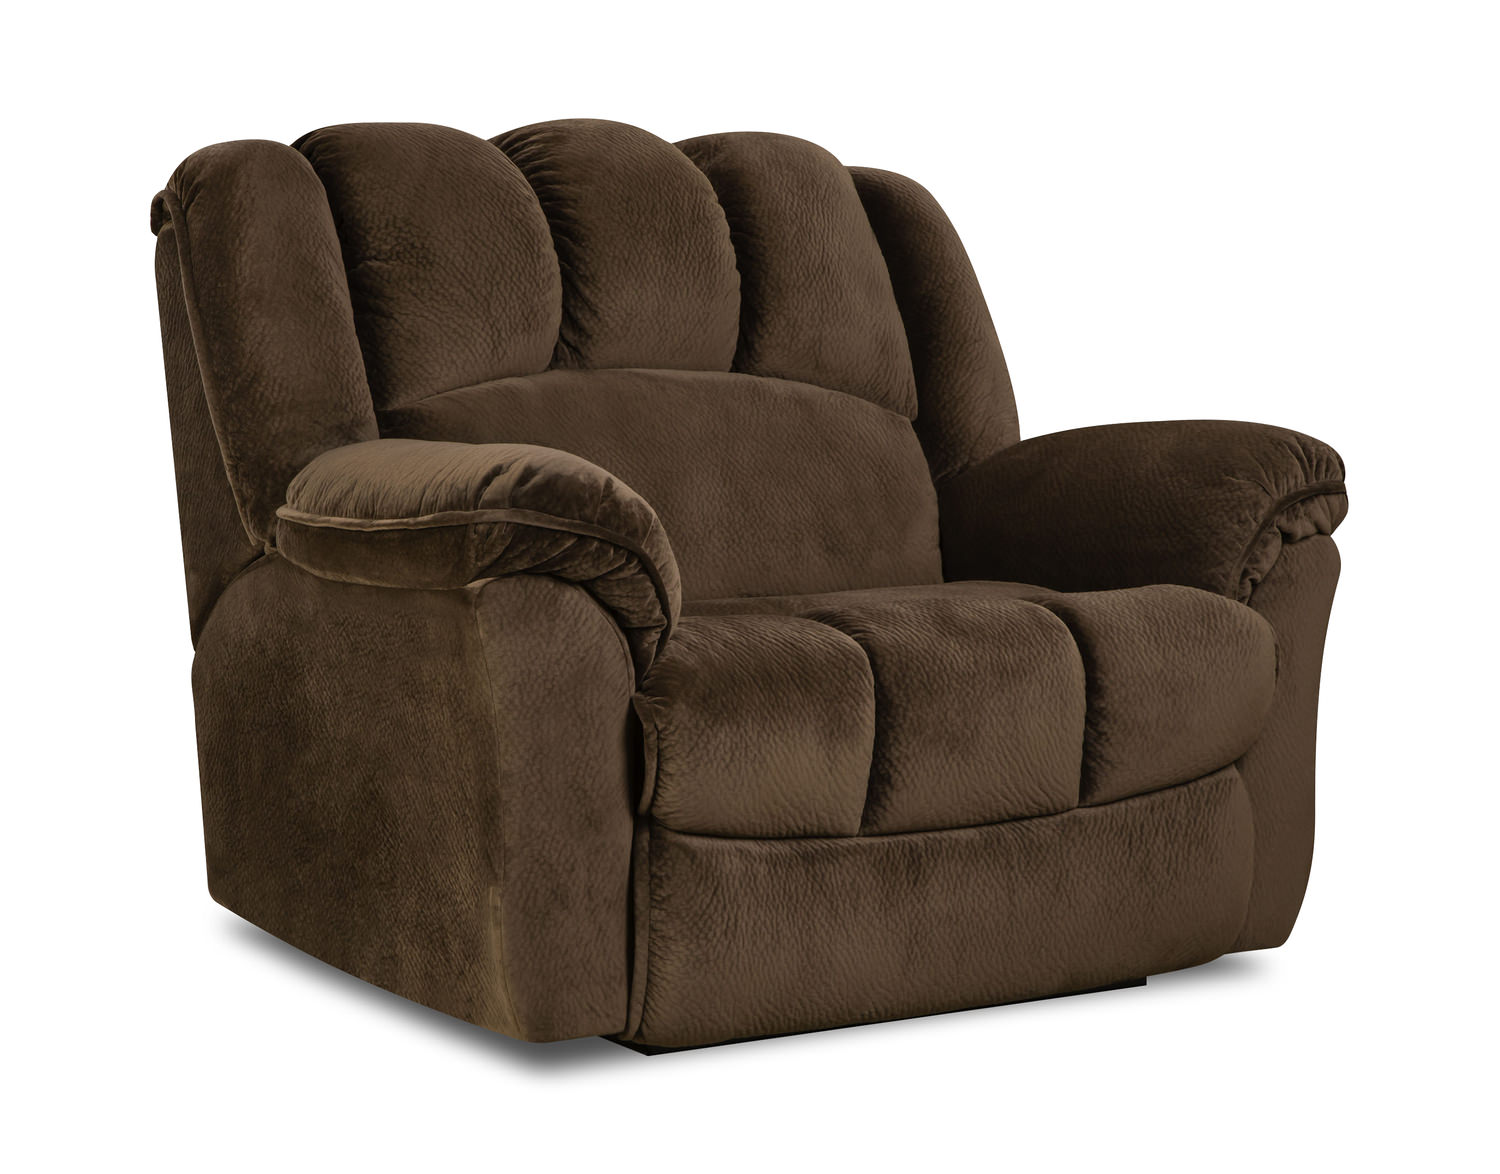 Custer Cuddler Recliner Hom Furniture